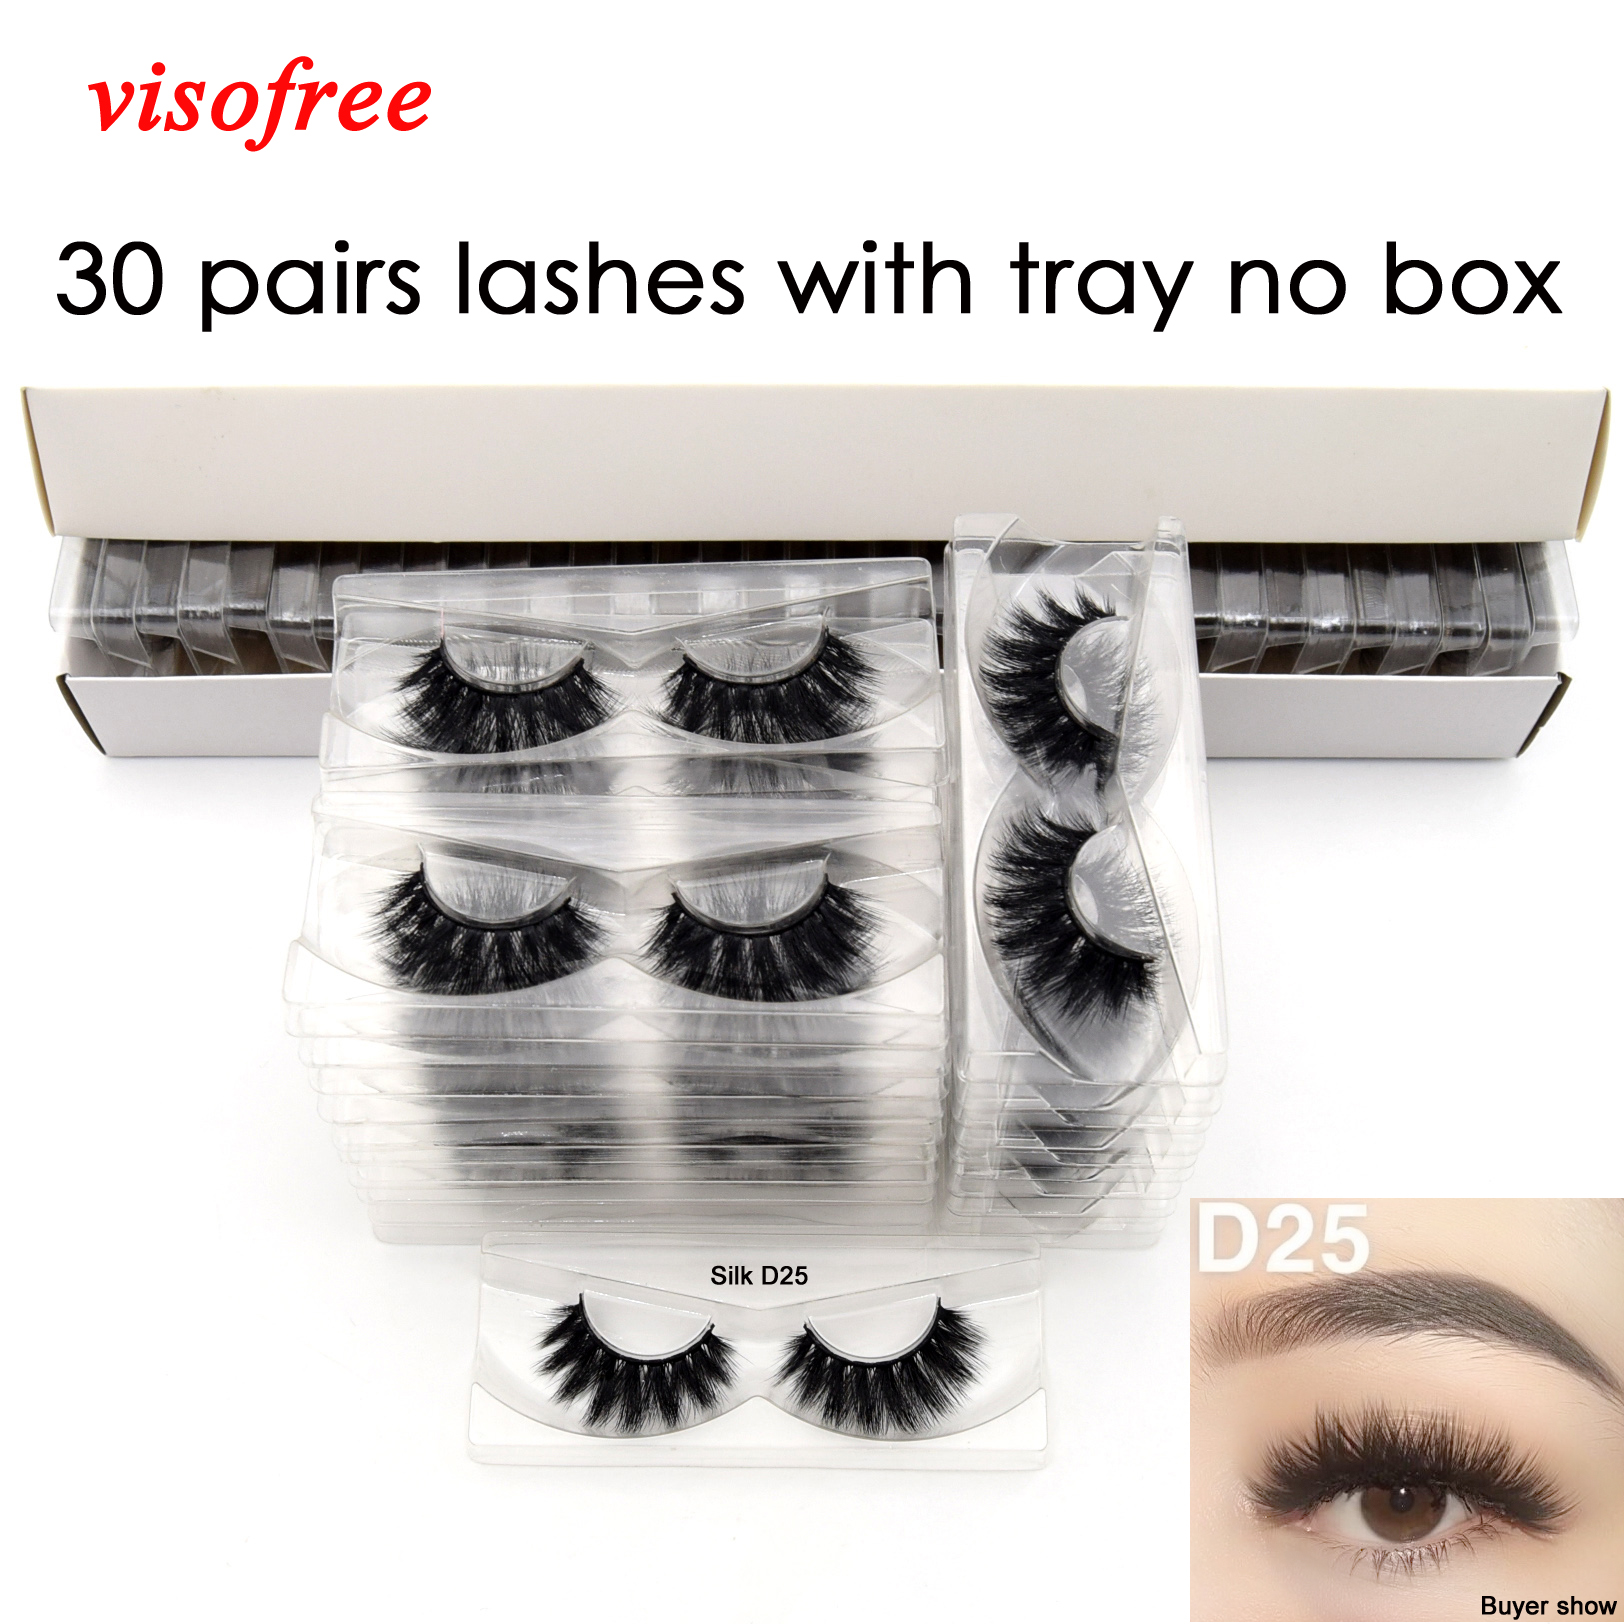 Visofree 30 Pairs/lot 3D Faux Mink Lashes With Tray No Box Handmade Full Strip Eye Lashes Fake Eyelashes Makeup Eyelashes Cilios